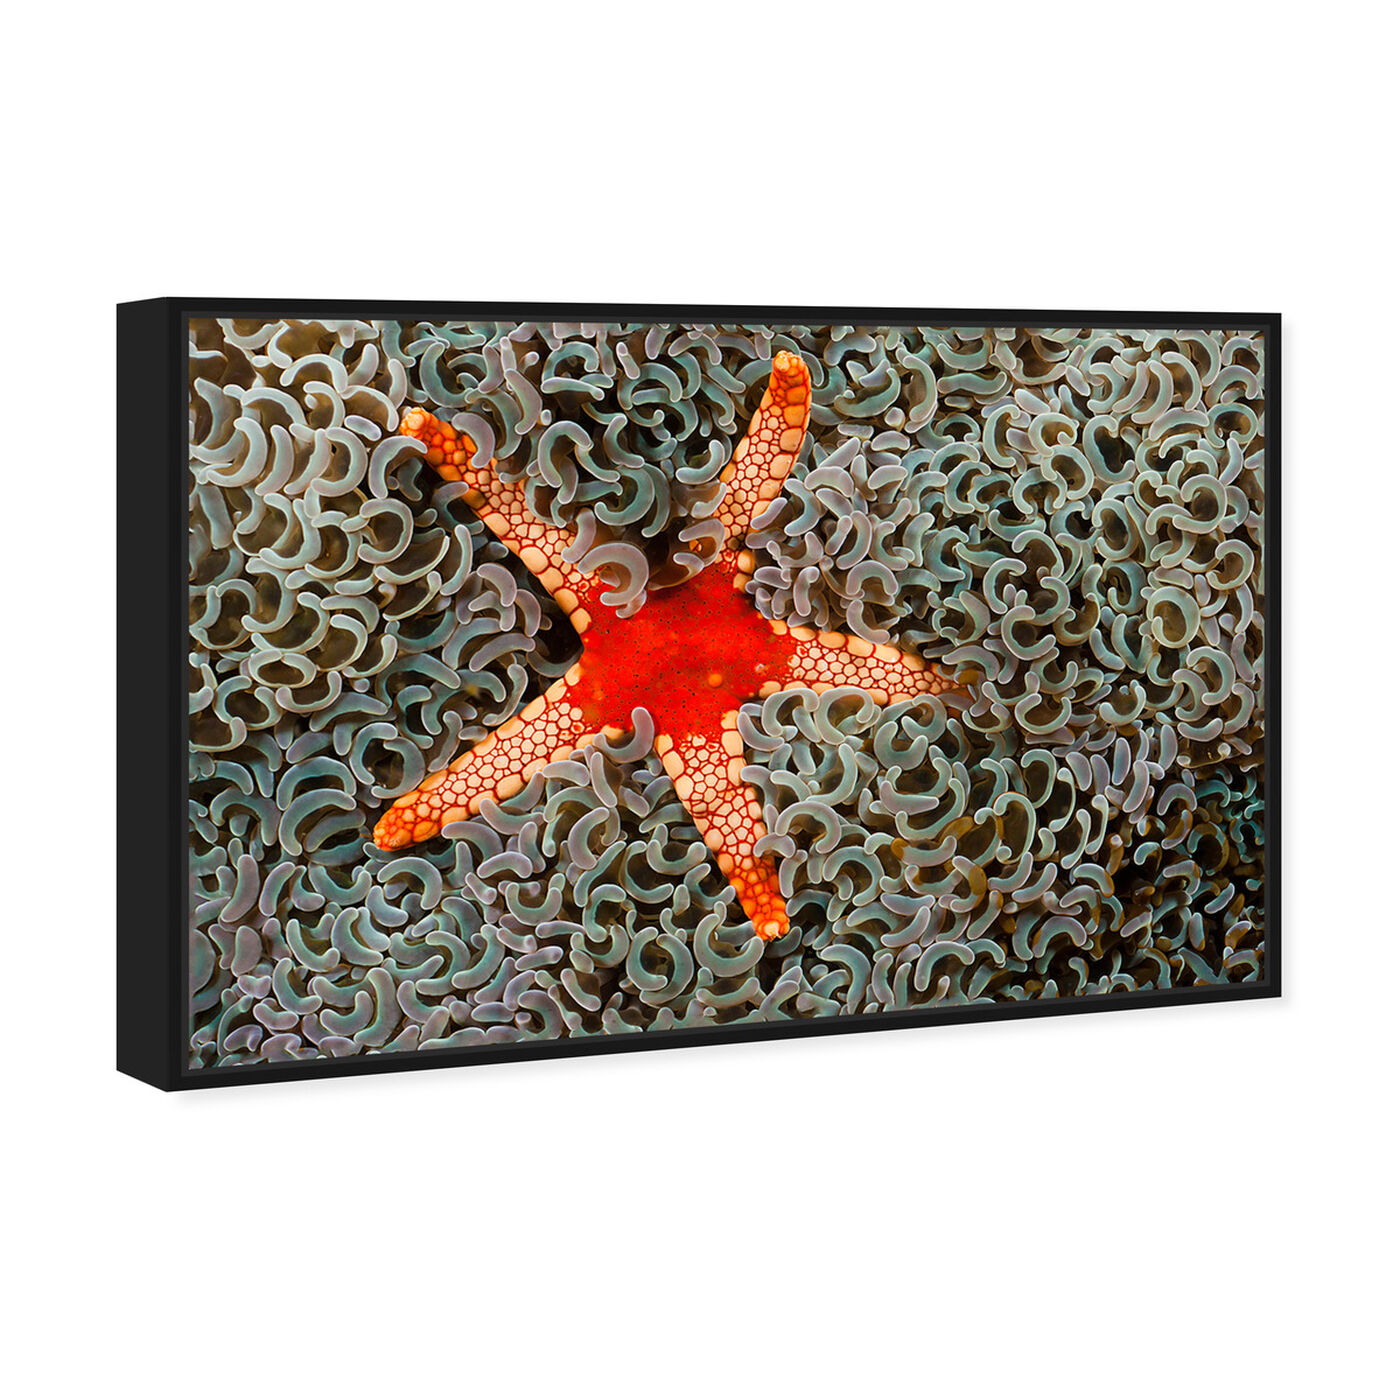 Angled view of Necklace Seastar by David Fleetham featuring nautical and coastal and marine life art.